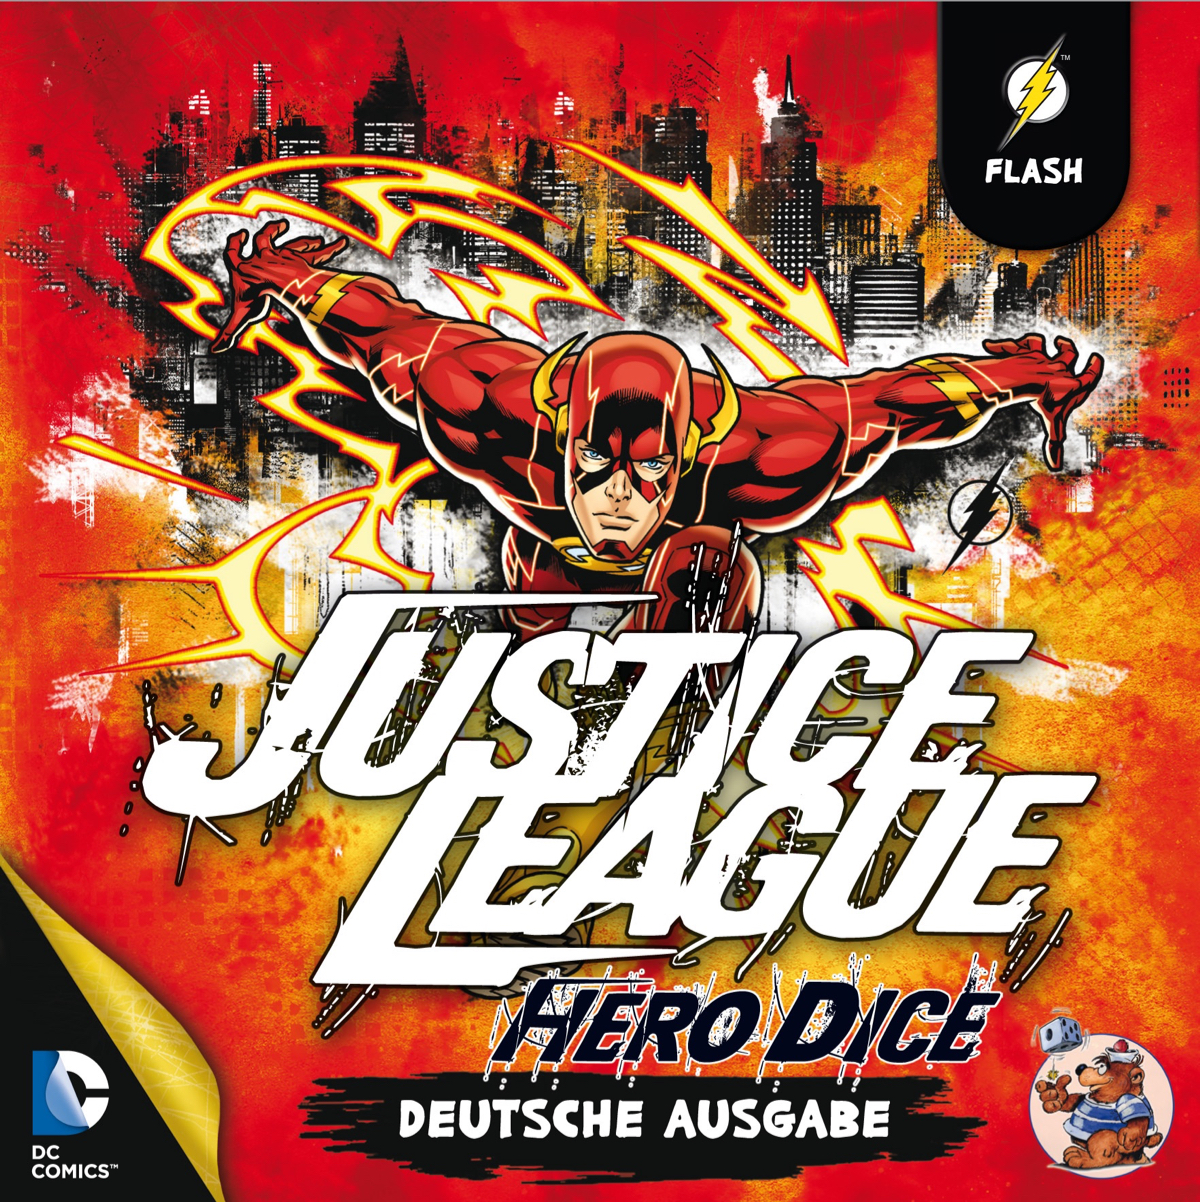 The Flash Spiele